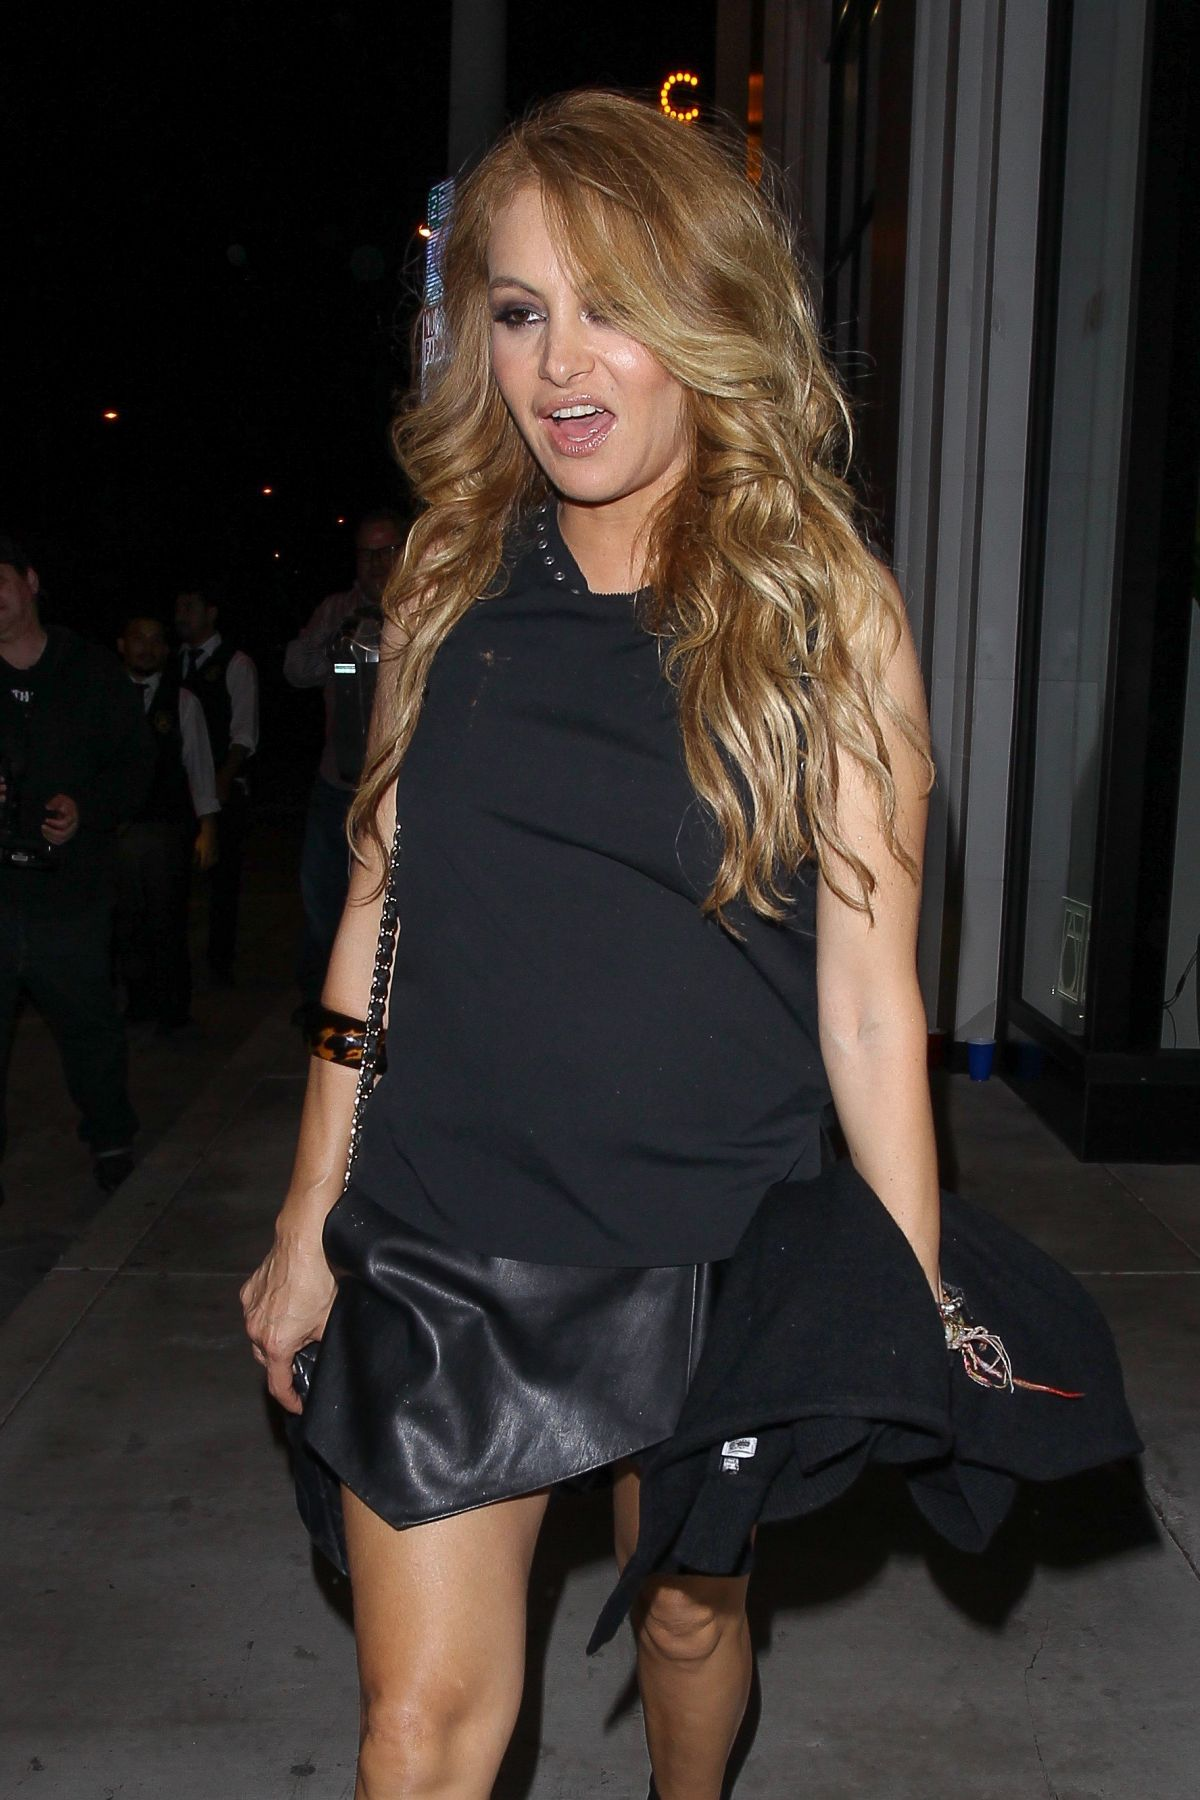 PAULINA RUBIO at Catch LA in West Hollywood 10/23/2016